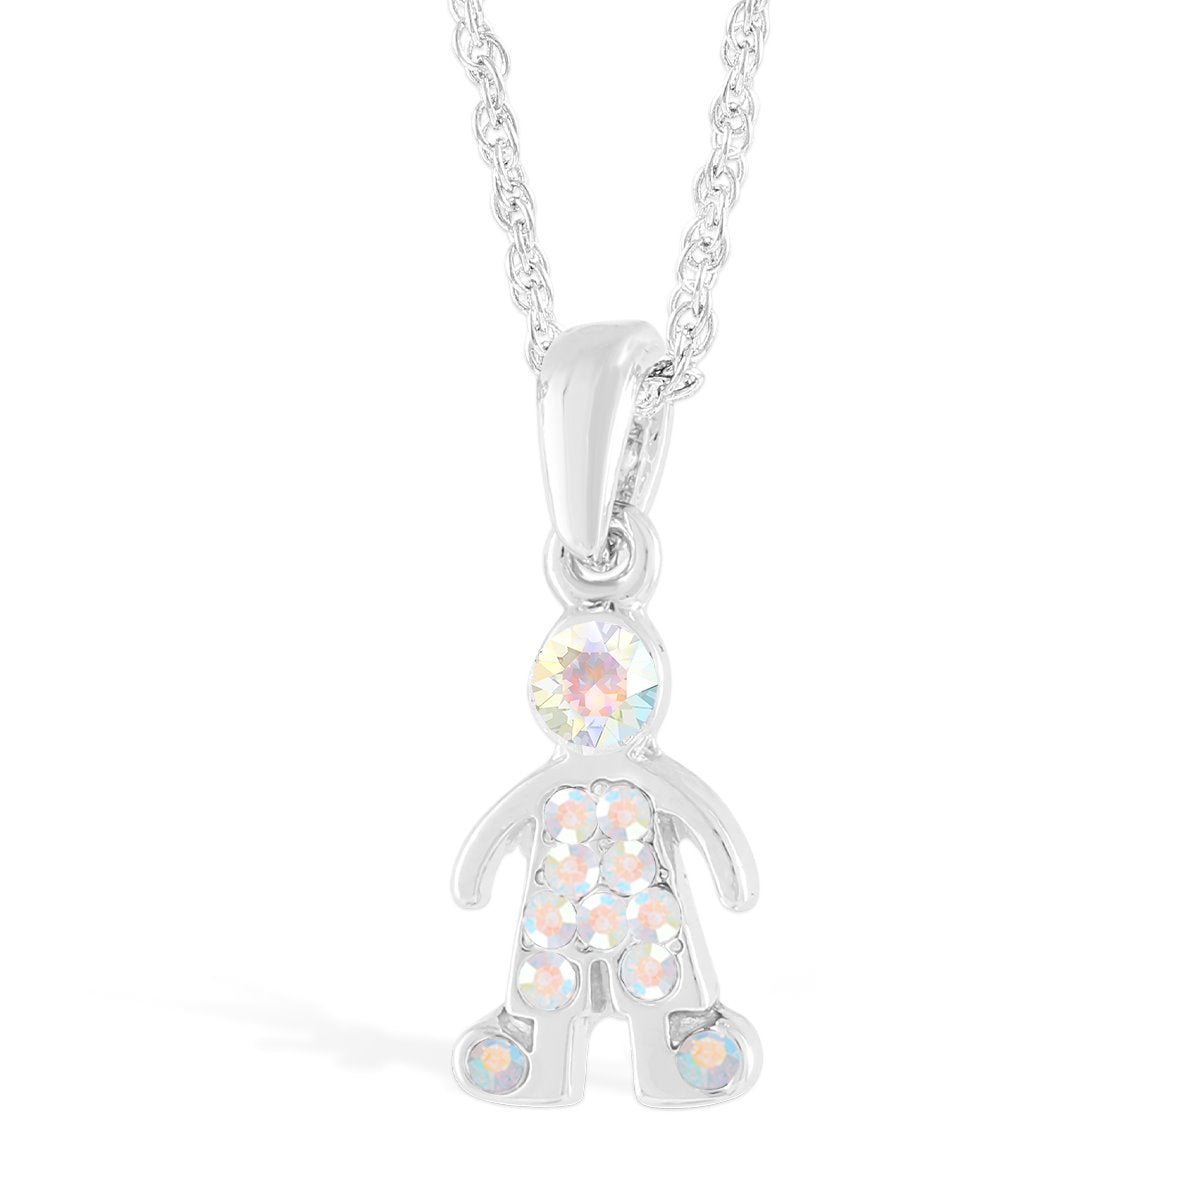 Boy with Crystals Pendant forevercrystals